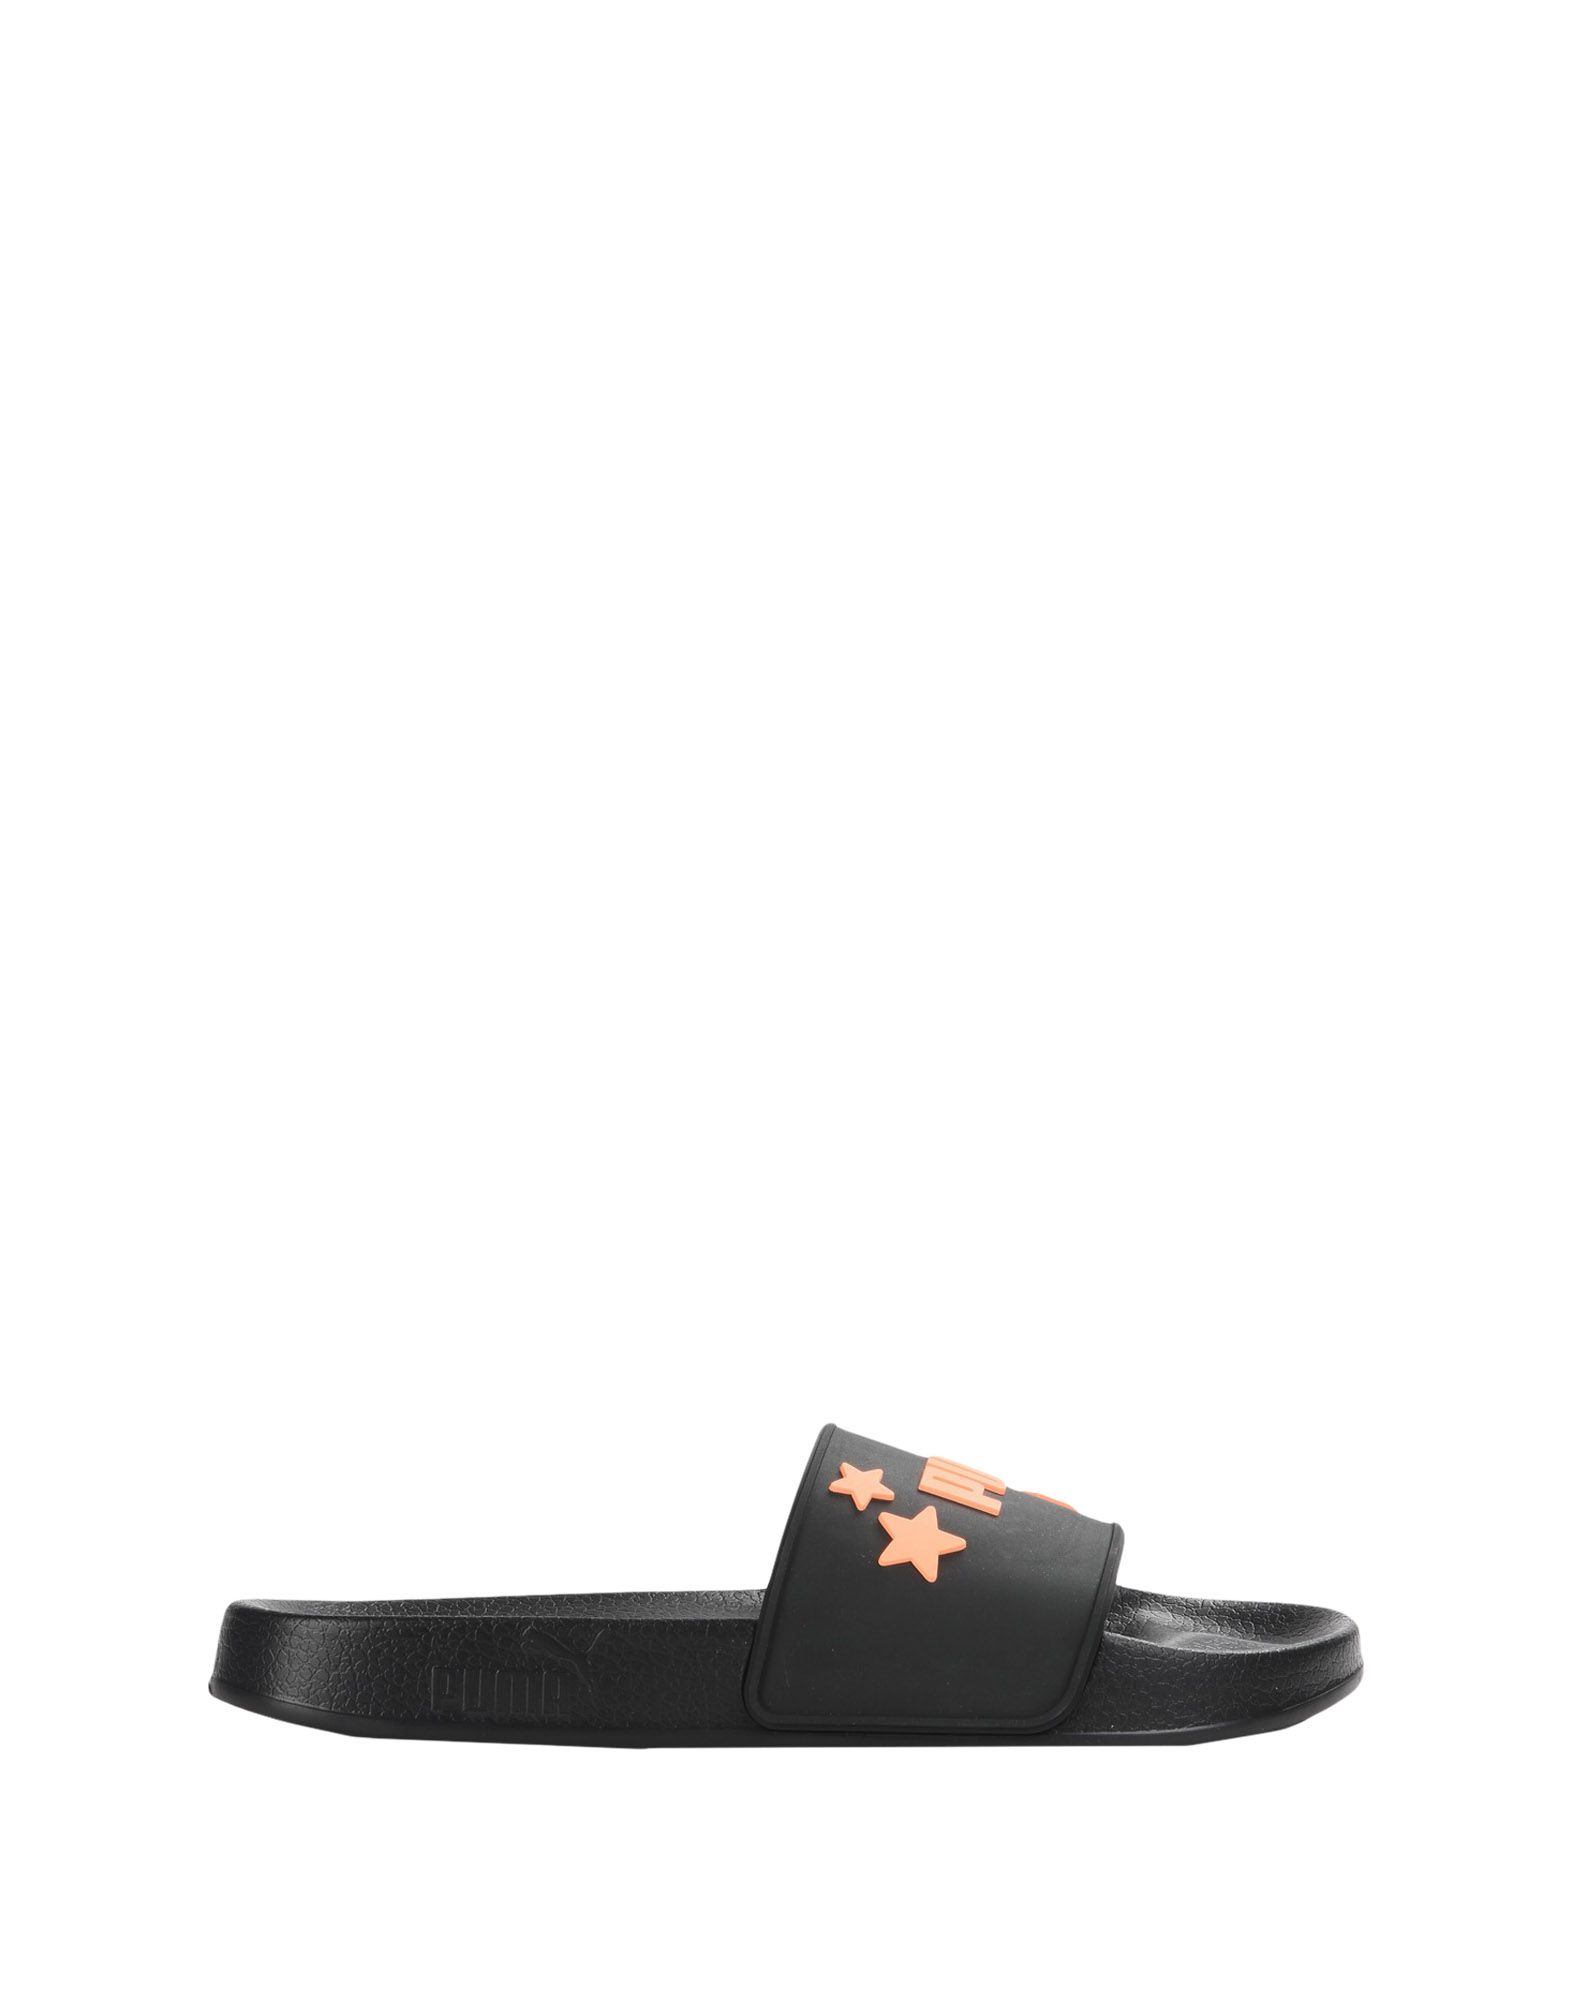 LEADCAT SW LEATHER - CHAUSSURES - SandalesPUMA X SOPHIA WEBSTER xXcHMcbTGL